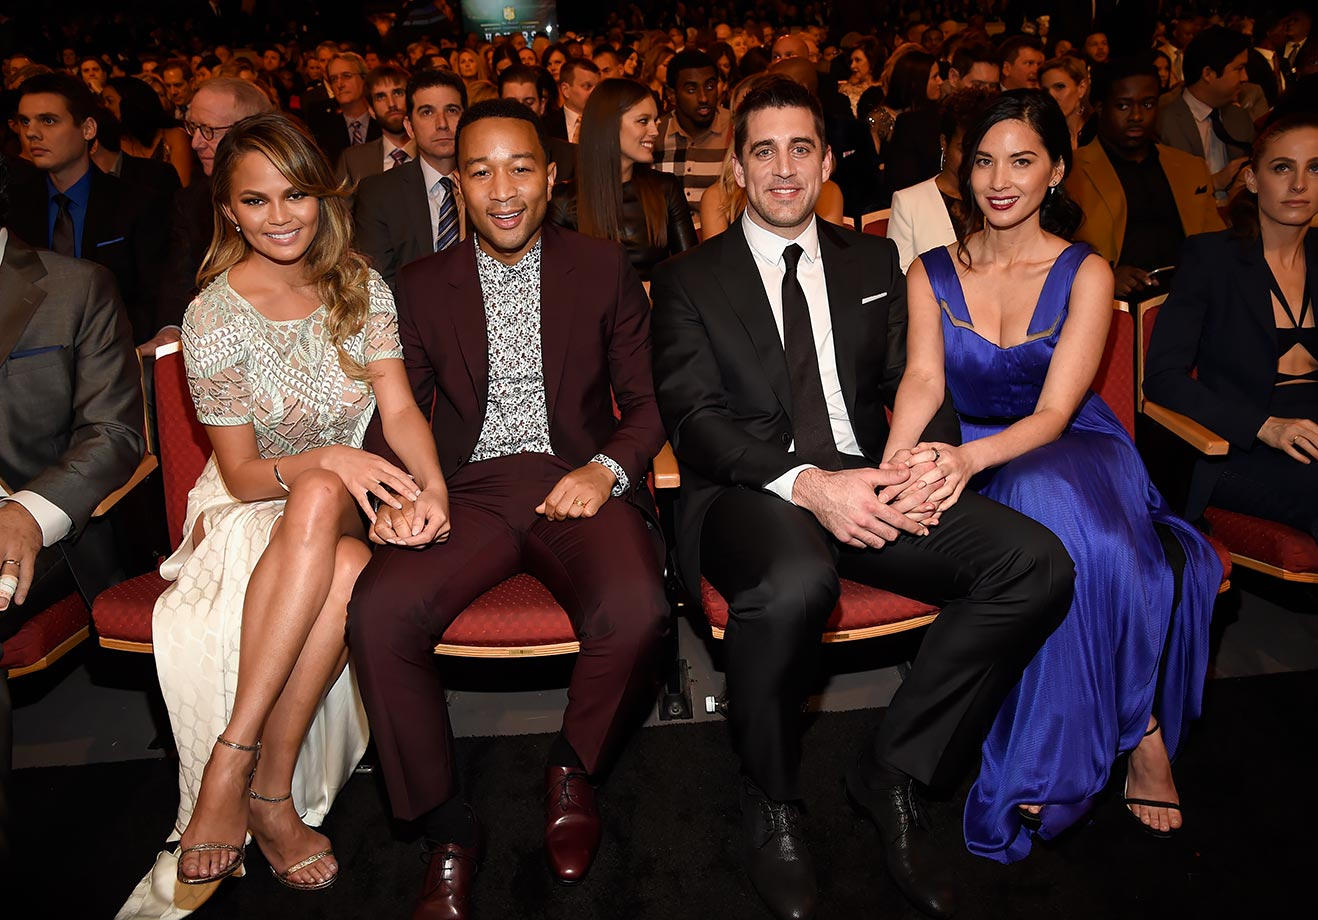 Chrissy Teigen, John Legend, Aaron Rodgers and Olivia Munn attend the 4th Annual NFL Honors at Phoenix Convention Center on Jan. 31, 2015 in Phoenix.